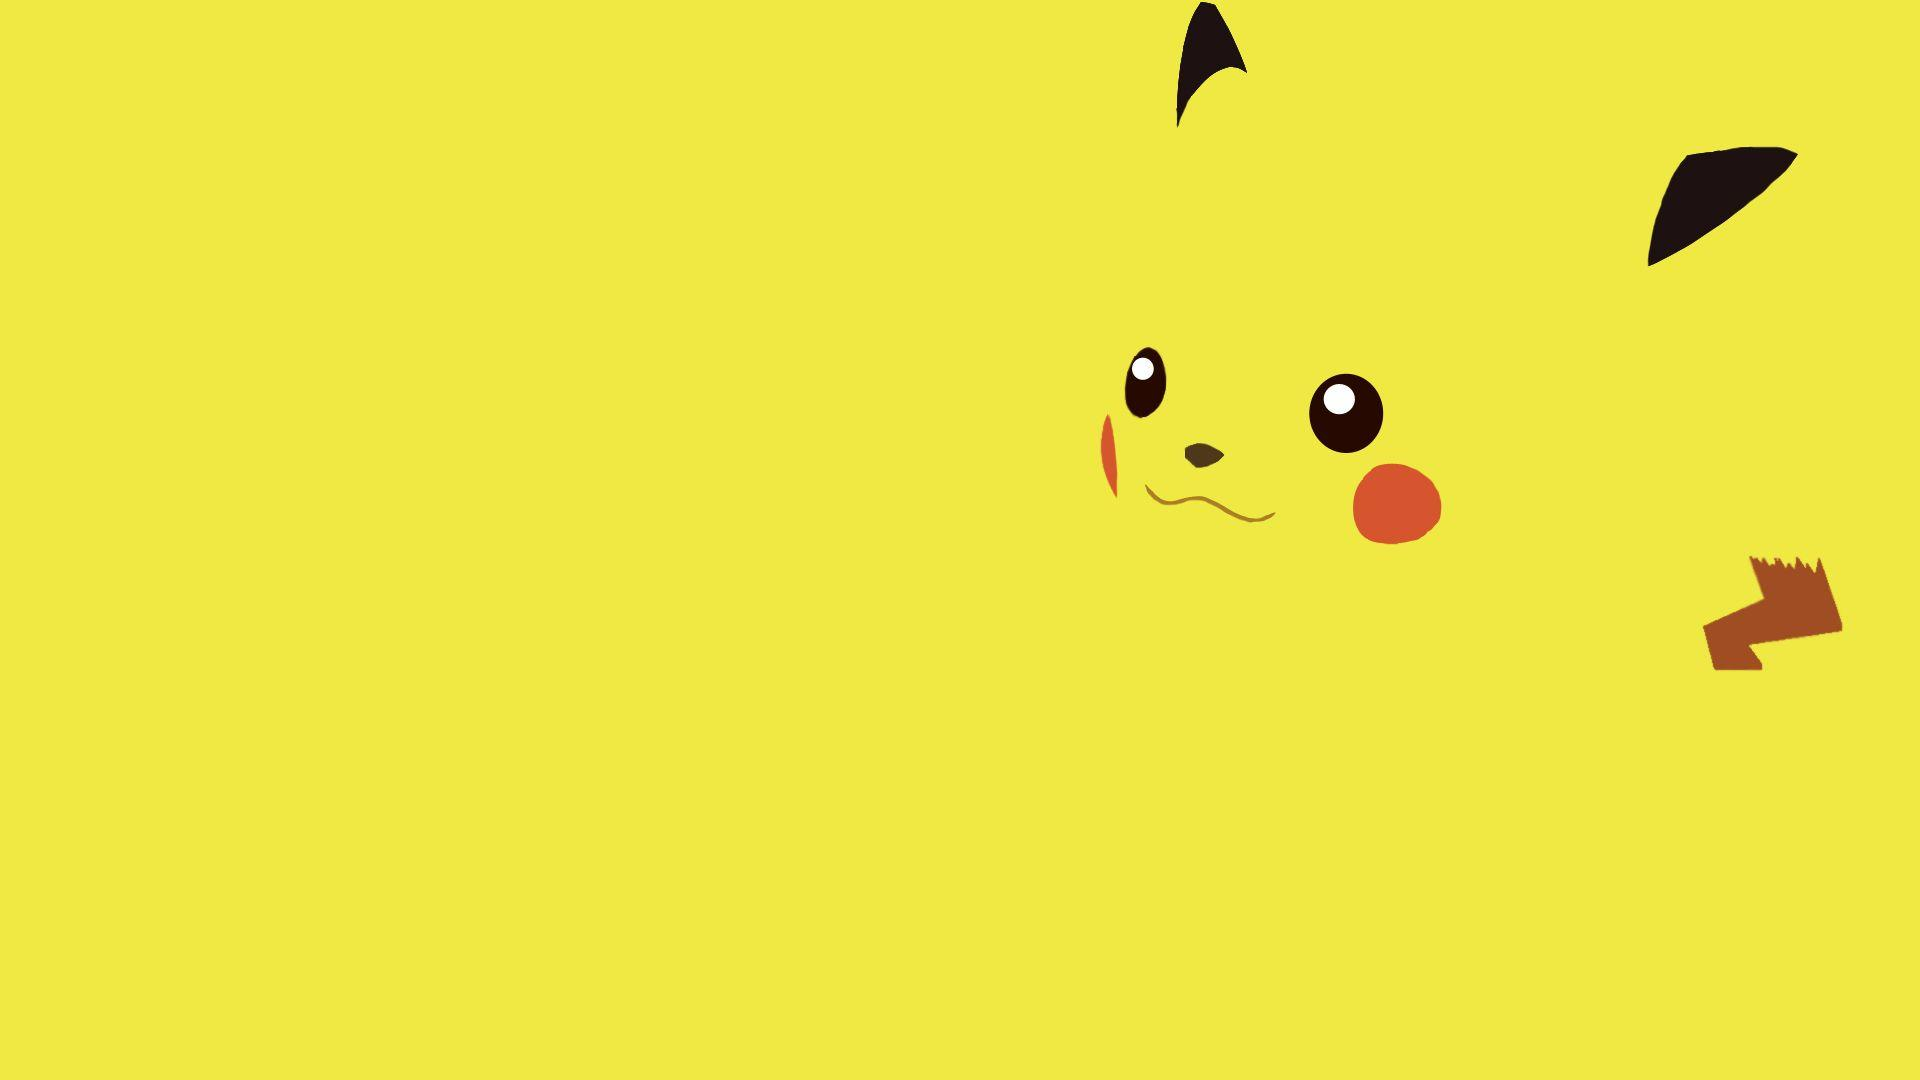 Pok Mon Pikachu Wallpapers Wallpaper Cave